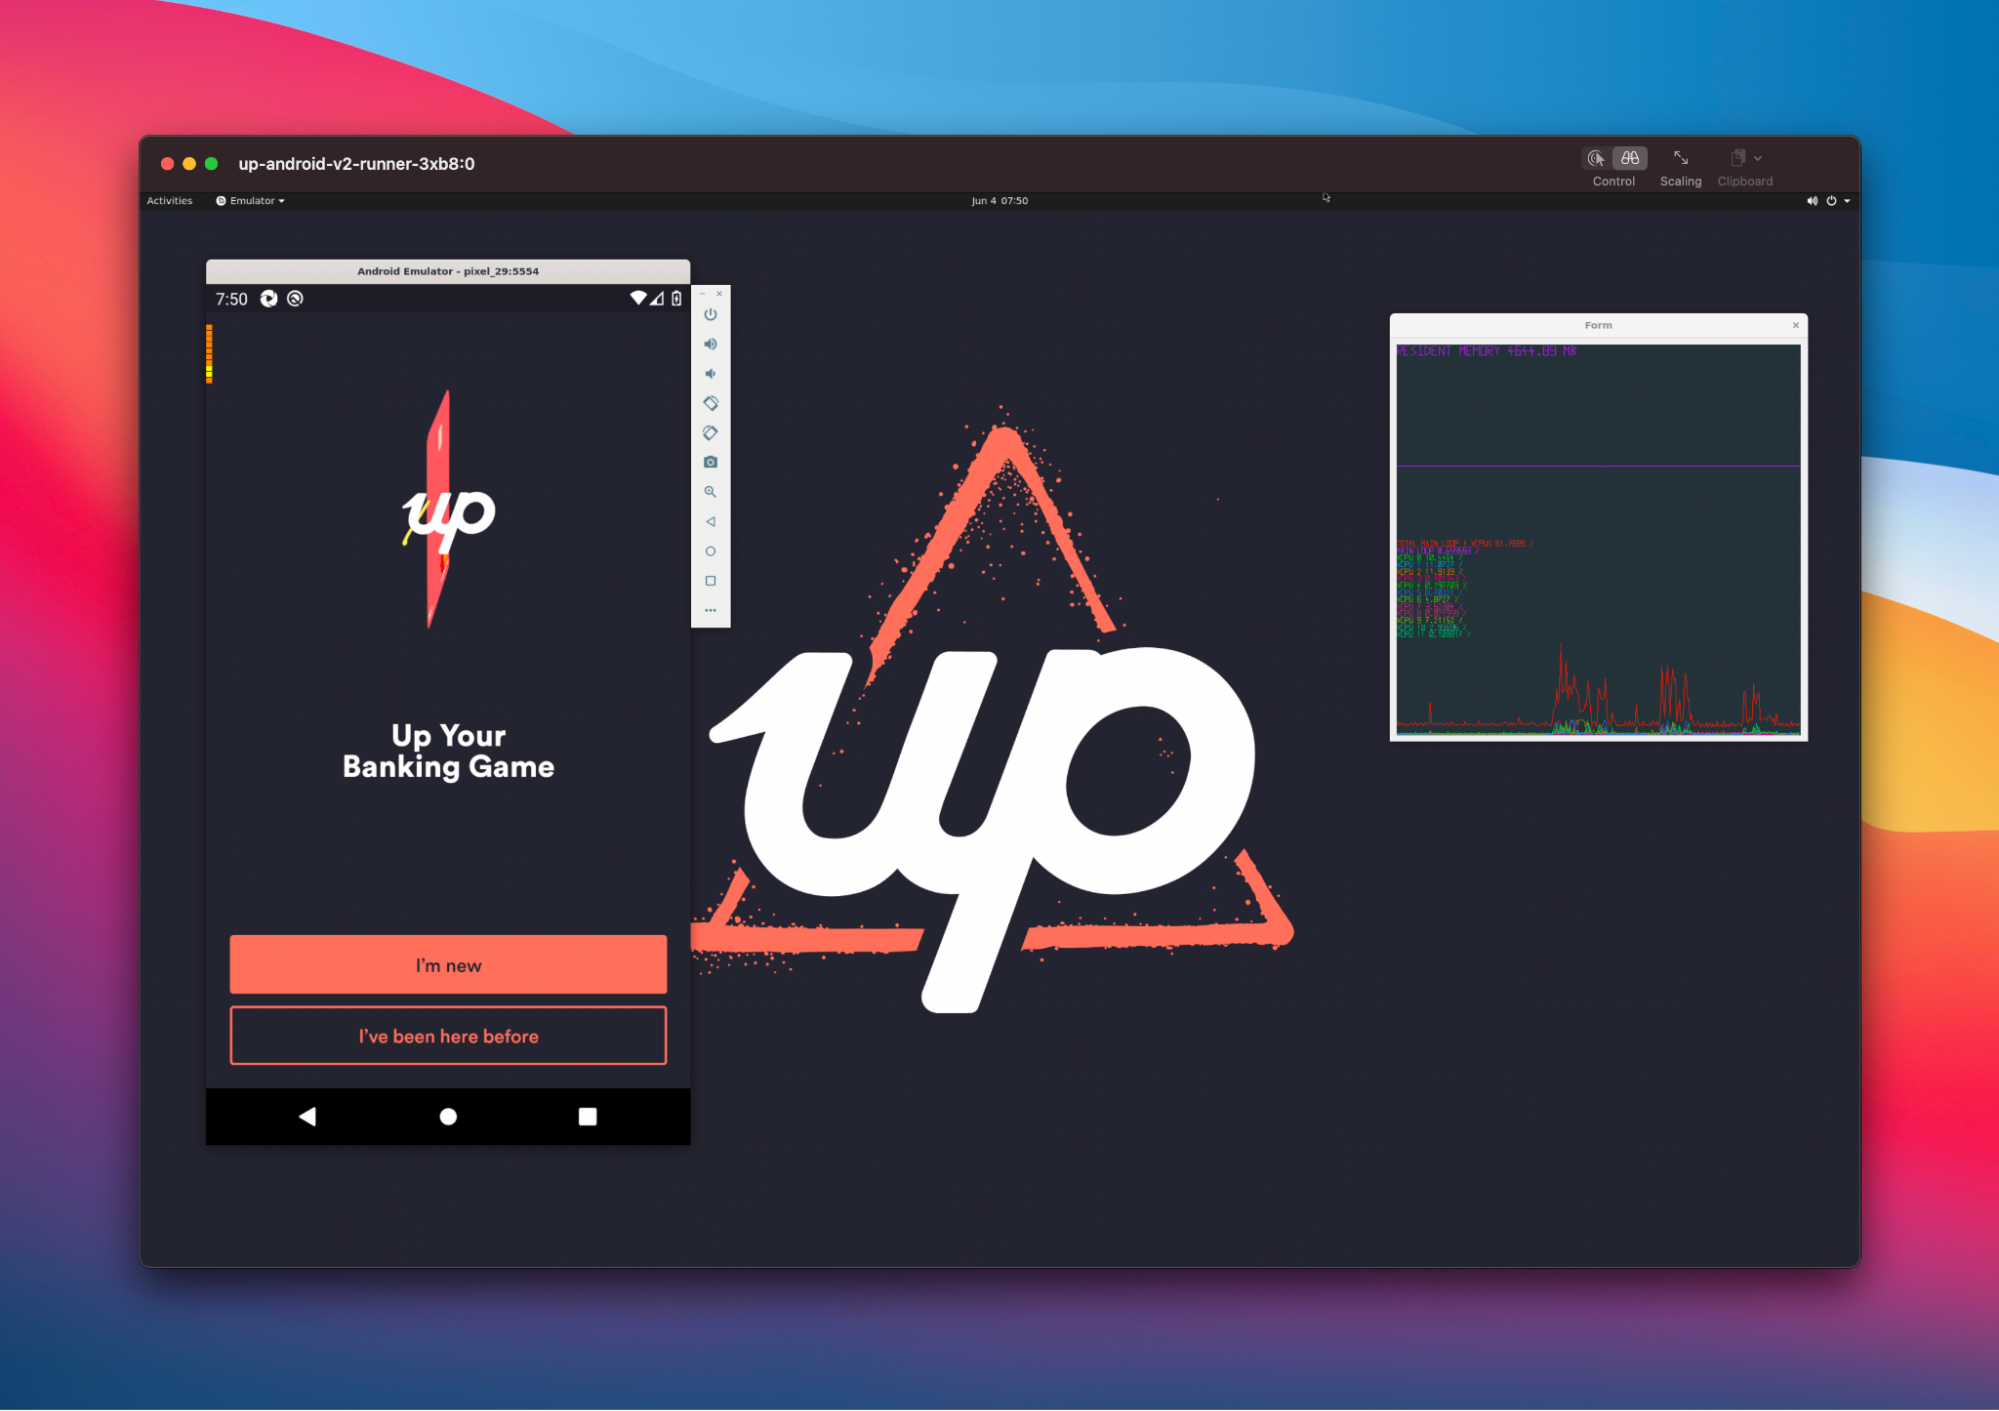 A still image of Up's Android Test Runner